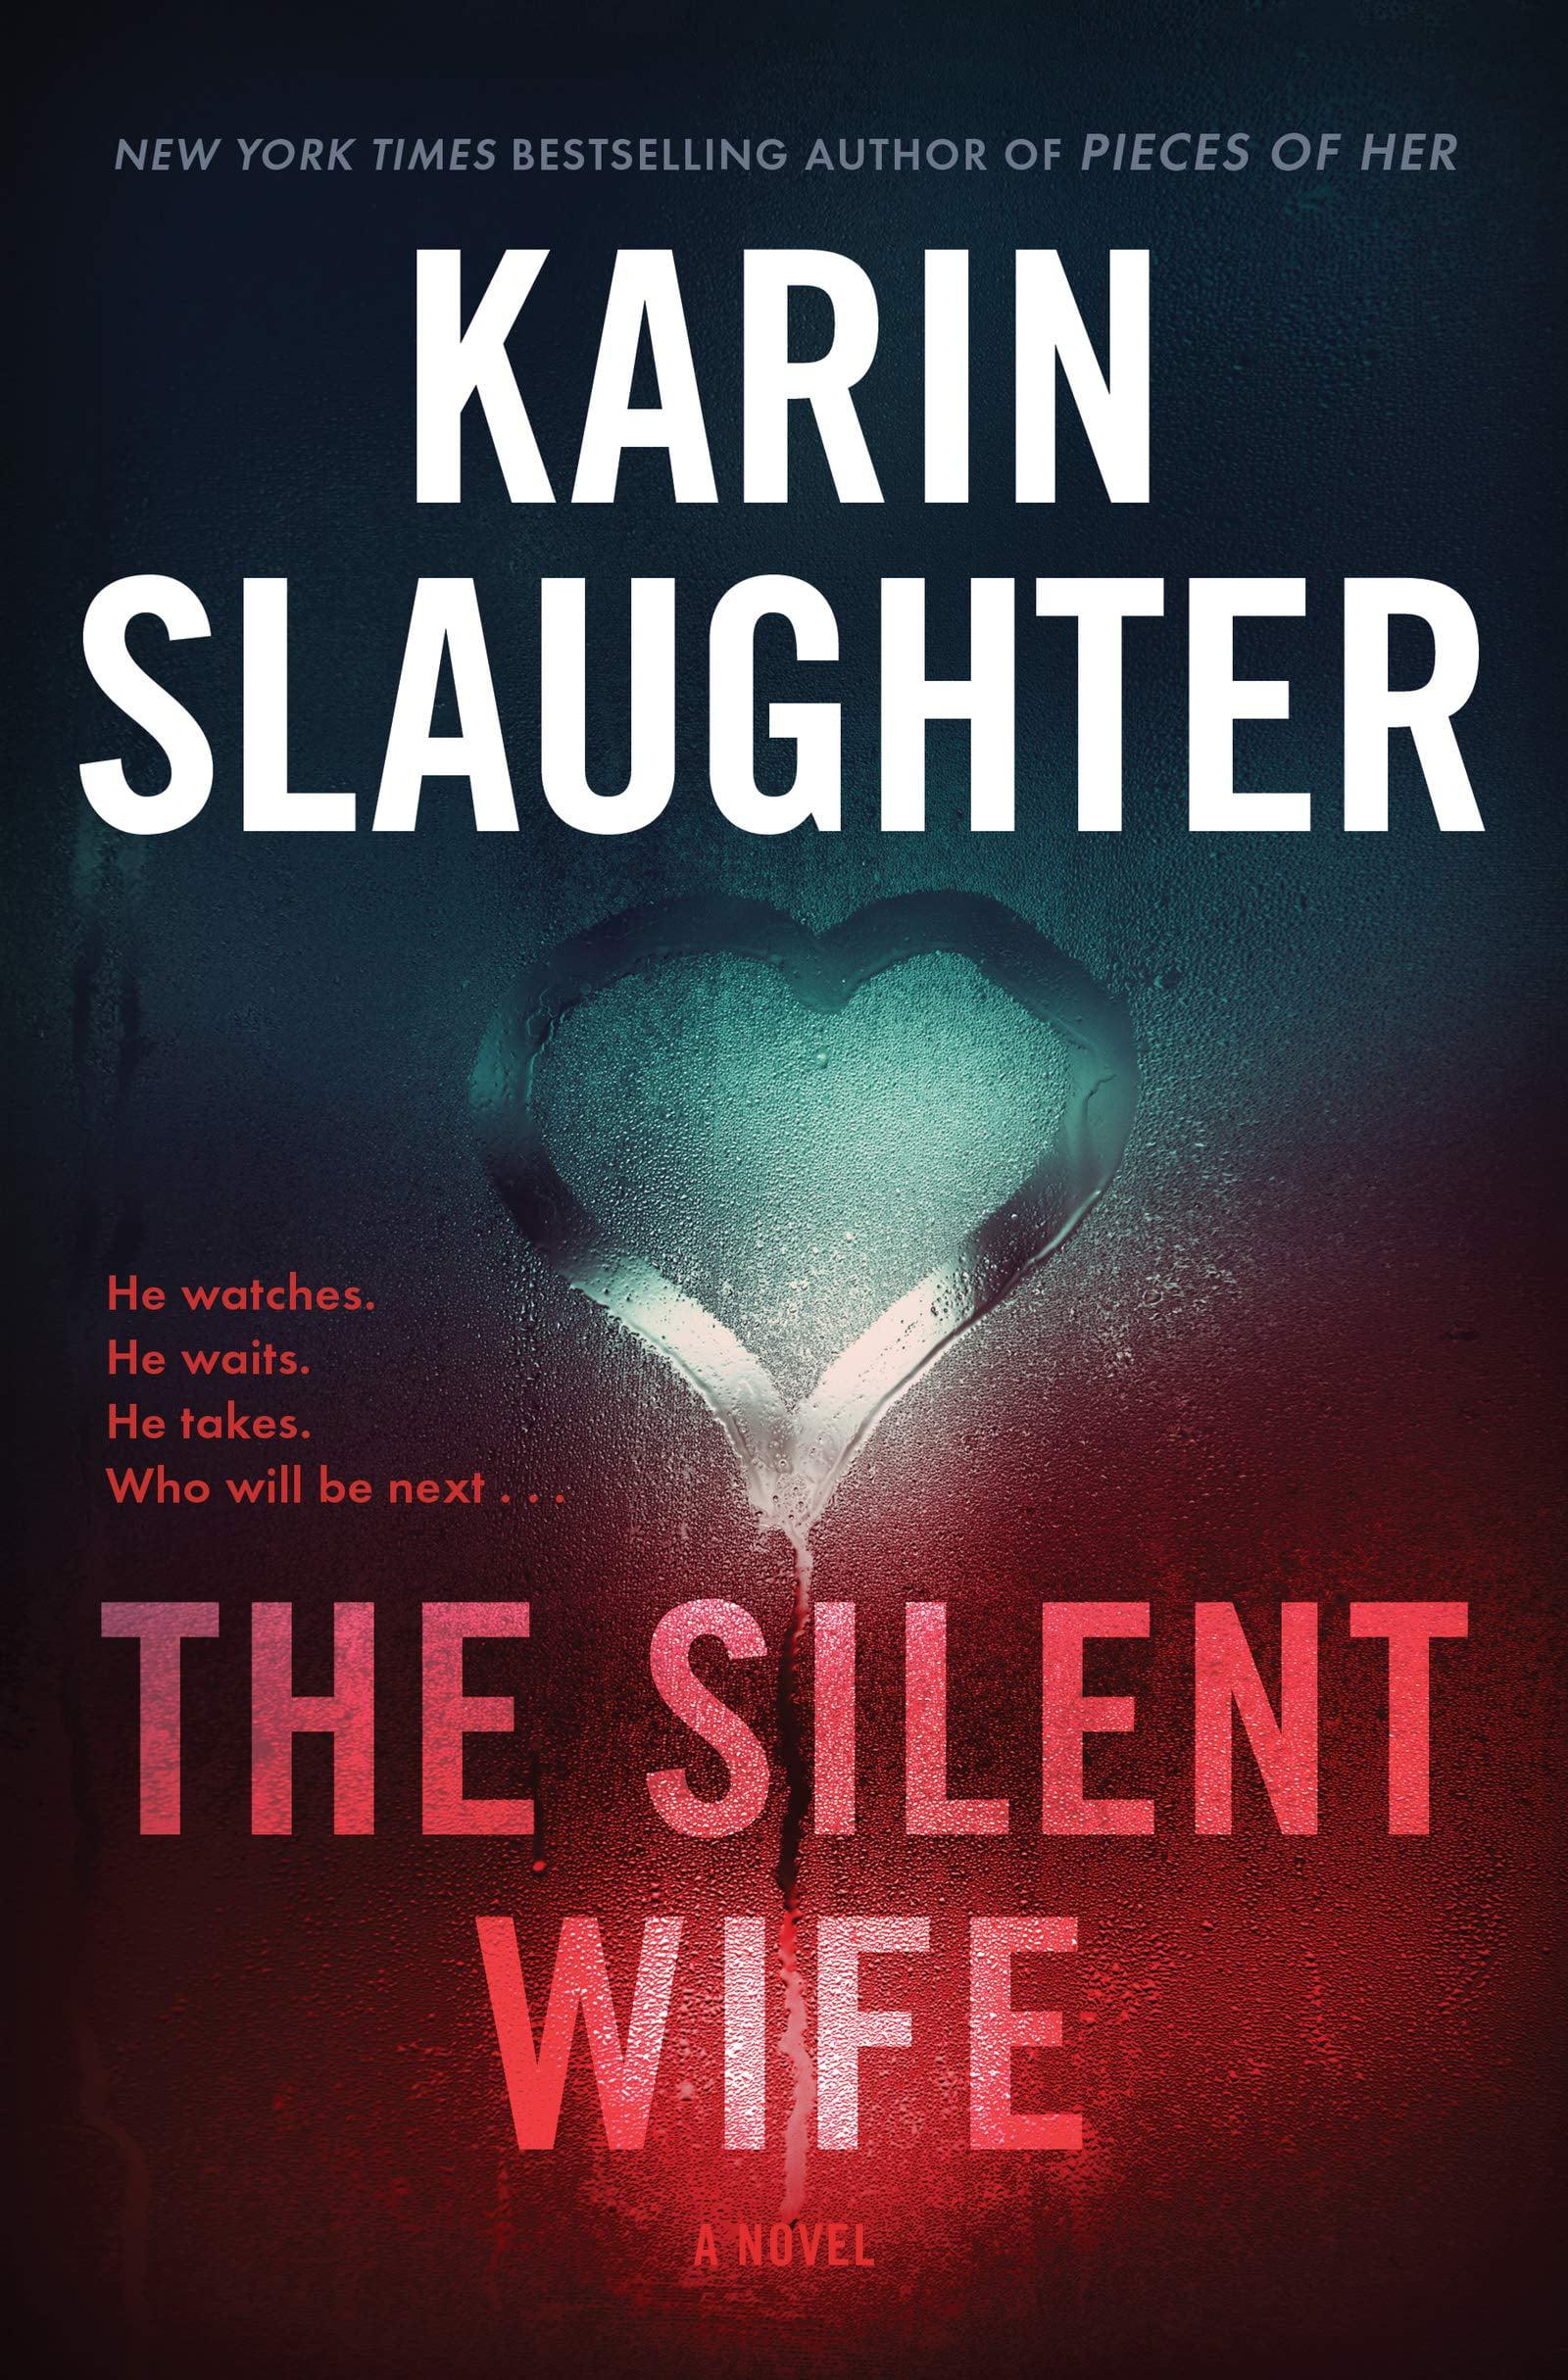 "<p>""Karin Slaughter's <span>The Silent Wife: A Novel</span> ($20, originally $29) proves that she's at the tippy top of her game. Investigator Will Trent is forced to take on two separate crimes simultaneously in this page-turner. Chock-full of complex relationships between characters, <strong>The Silent Wife</strong> will absolutely leave you on the edge of your seat. In Slaughter's traditional descriptive style, she leaves no stone unturned. This thriller isn't for the faint of heart!"" - Murphy Moroney, staff writer, Family</p>"